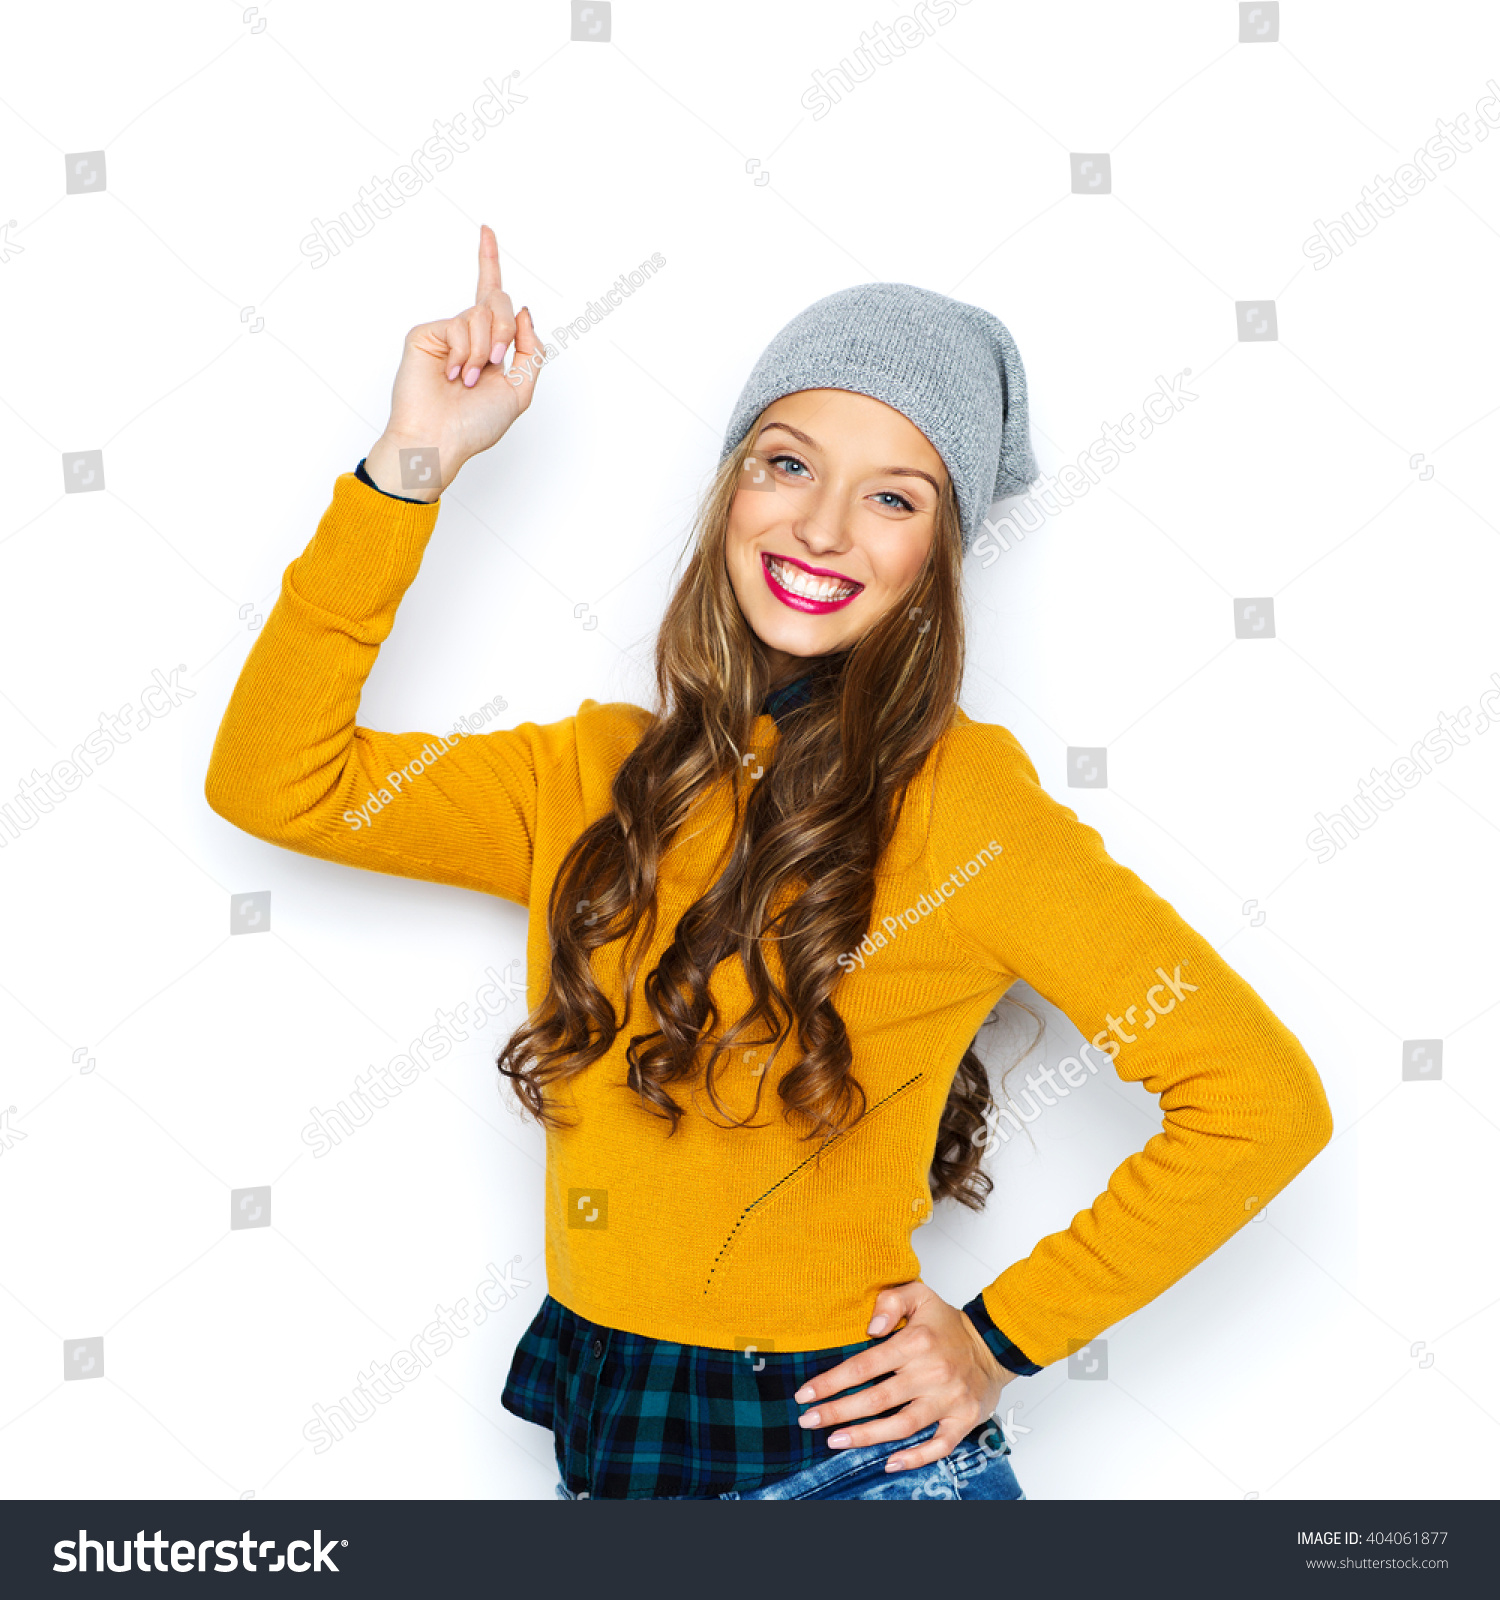 People Style Fashion Concept Happy Young Stock Photo 404061877 Shutterstock